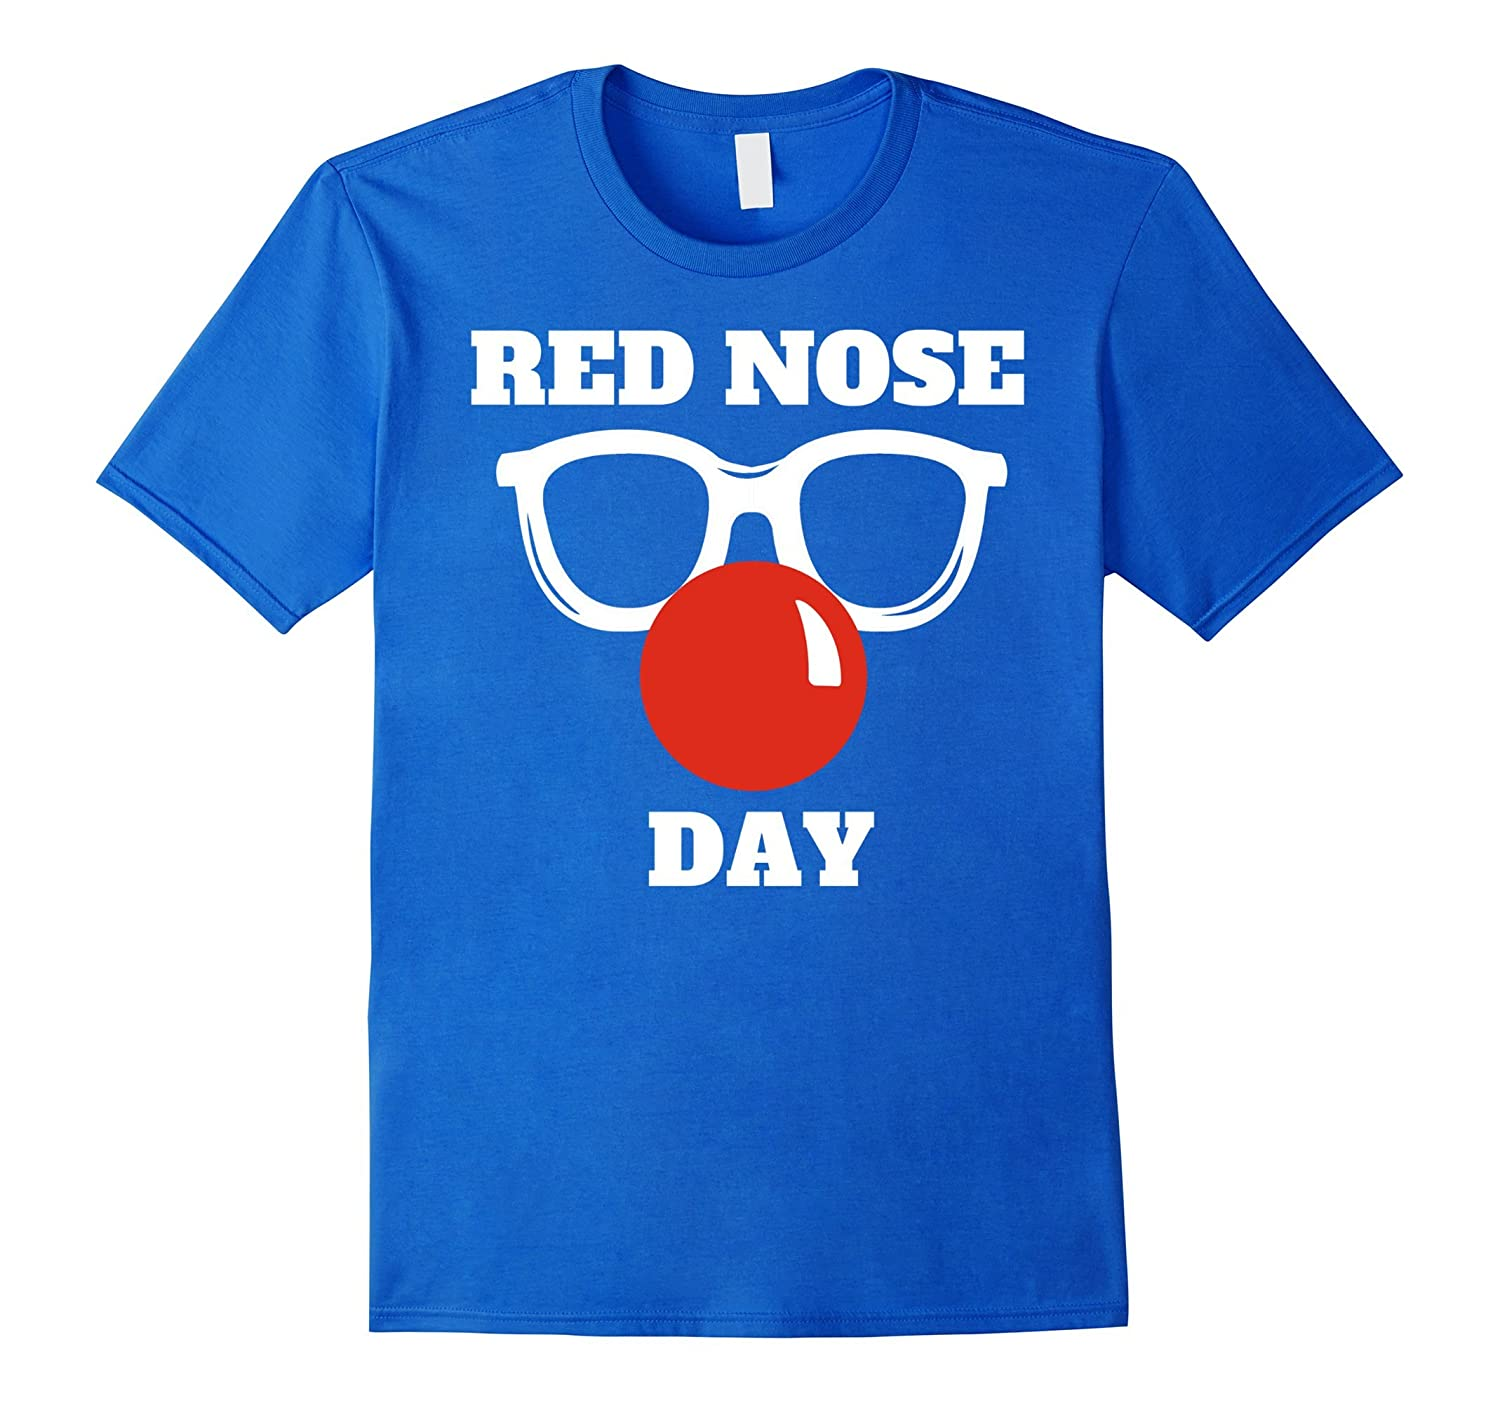 Red Nose Day 2017 T-shirt